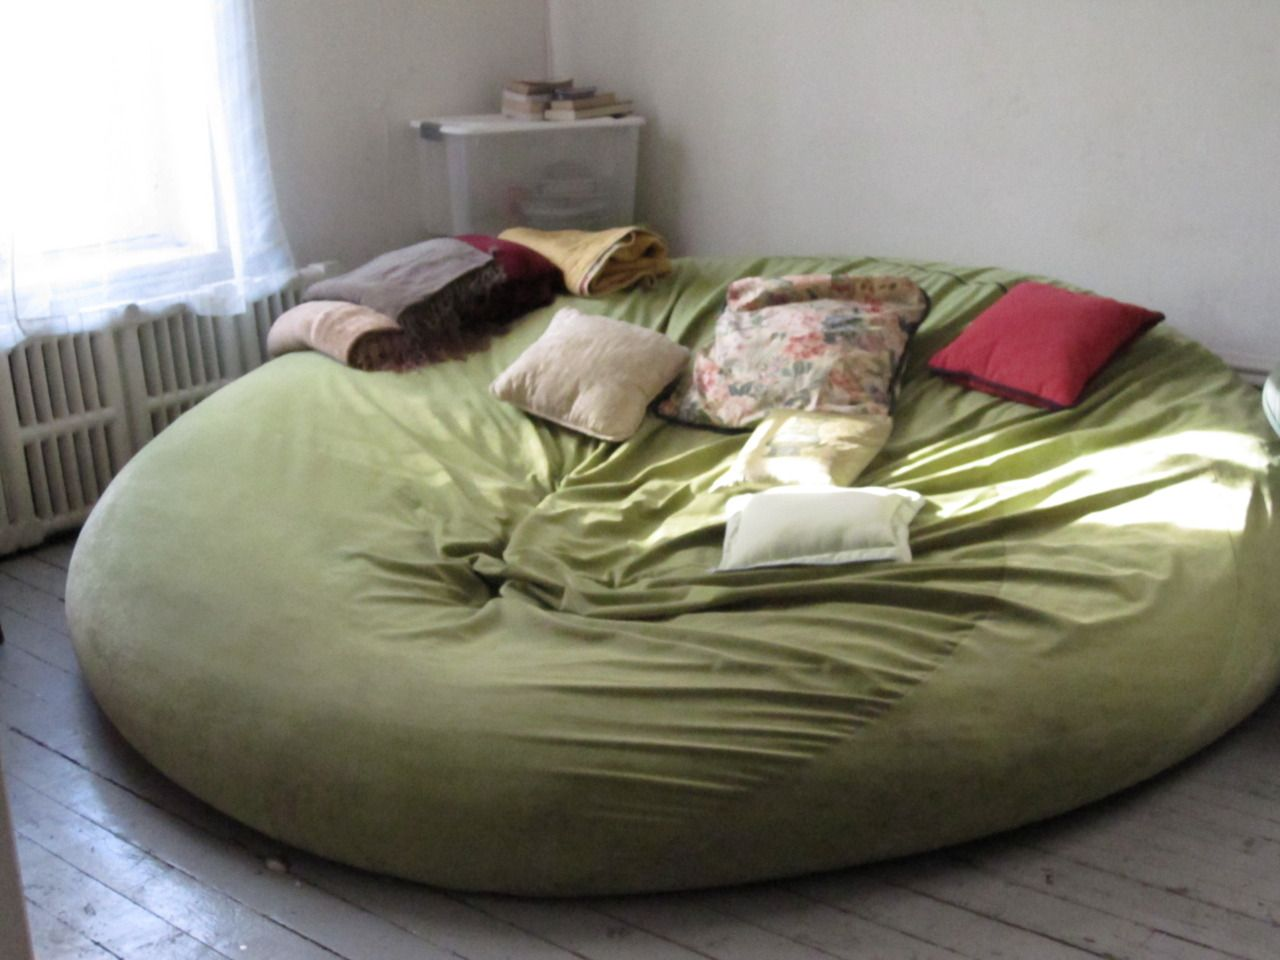 Funny Bean Bag Chairs | Biggest bean bag chair bed I